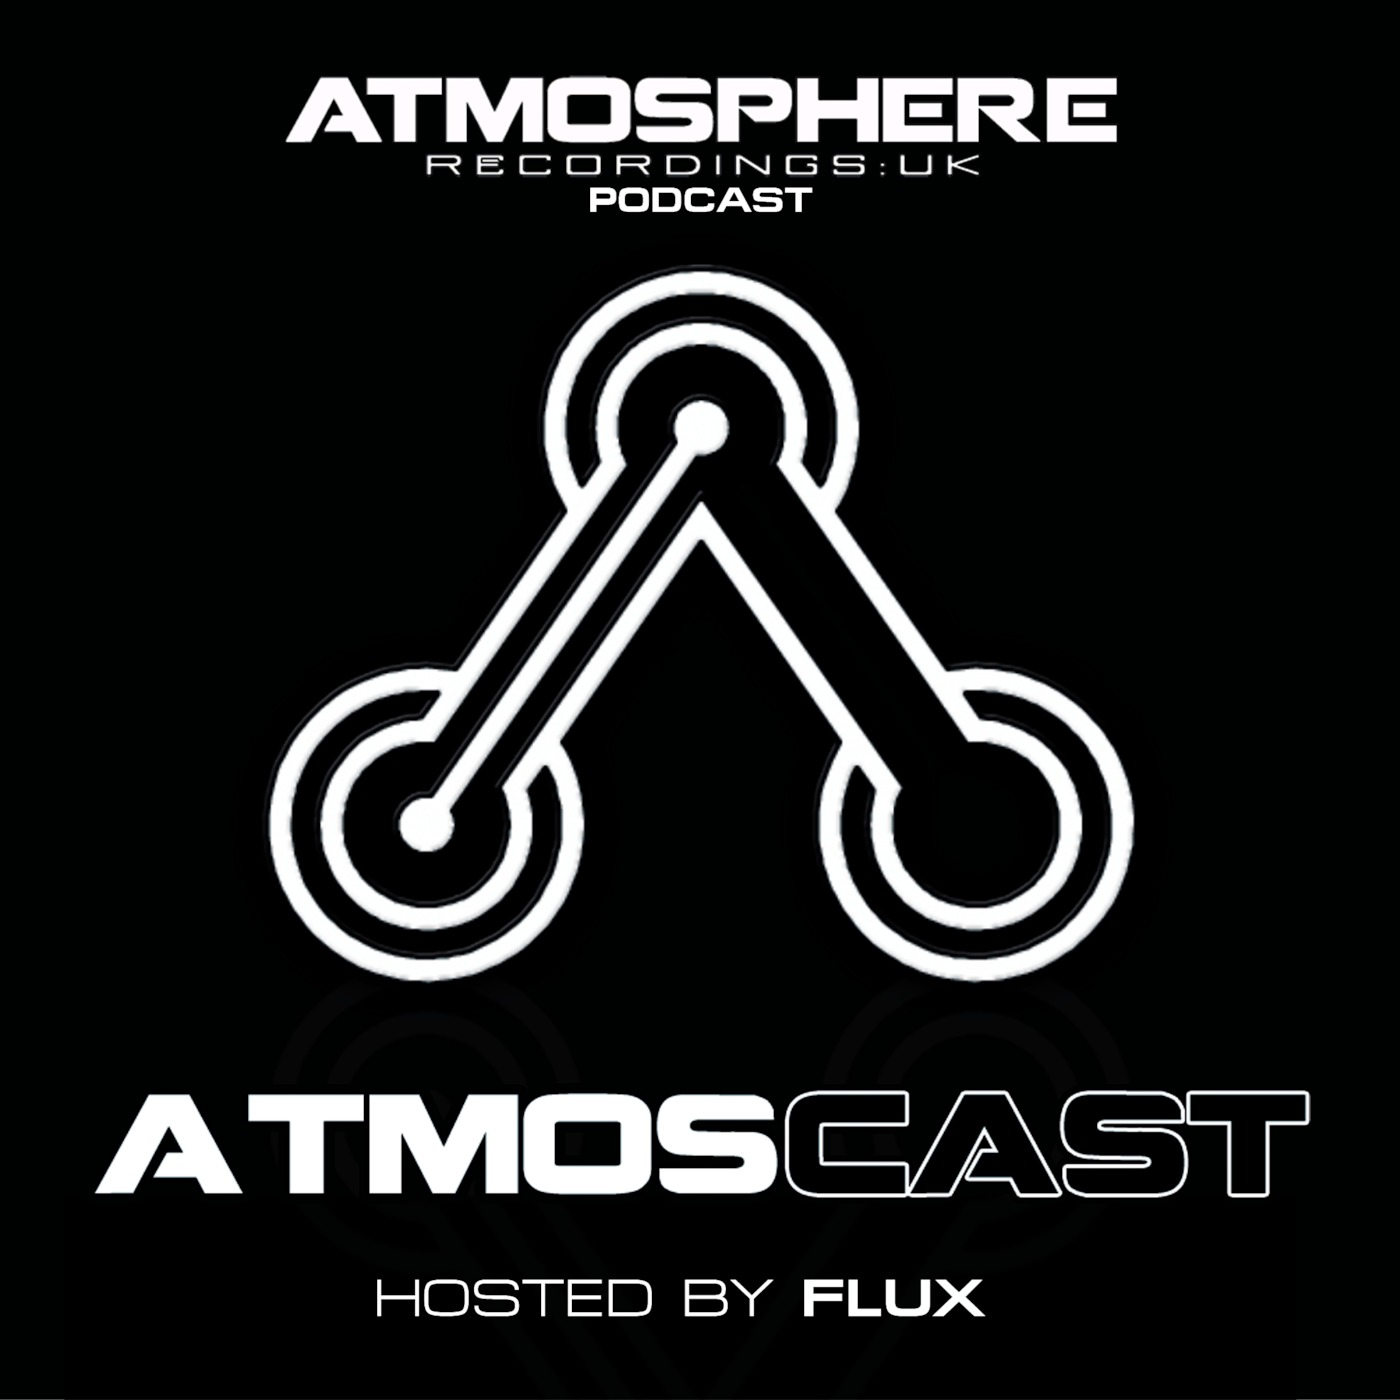 Atmosphere Recordings:UK's ATMOSCAST